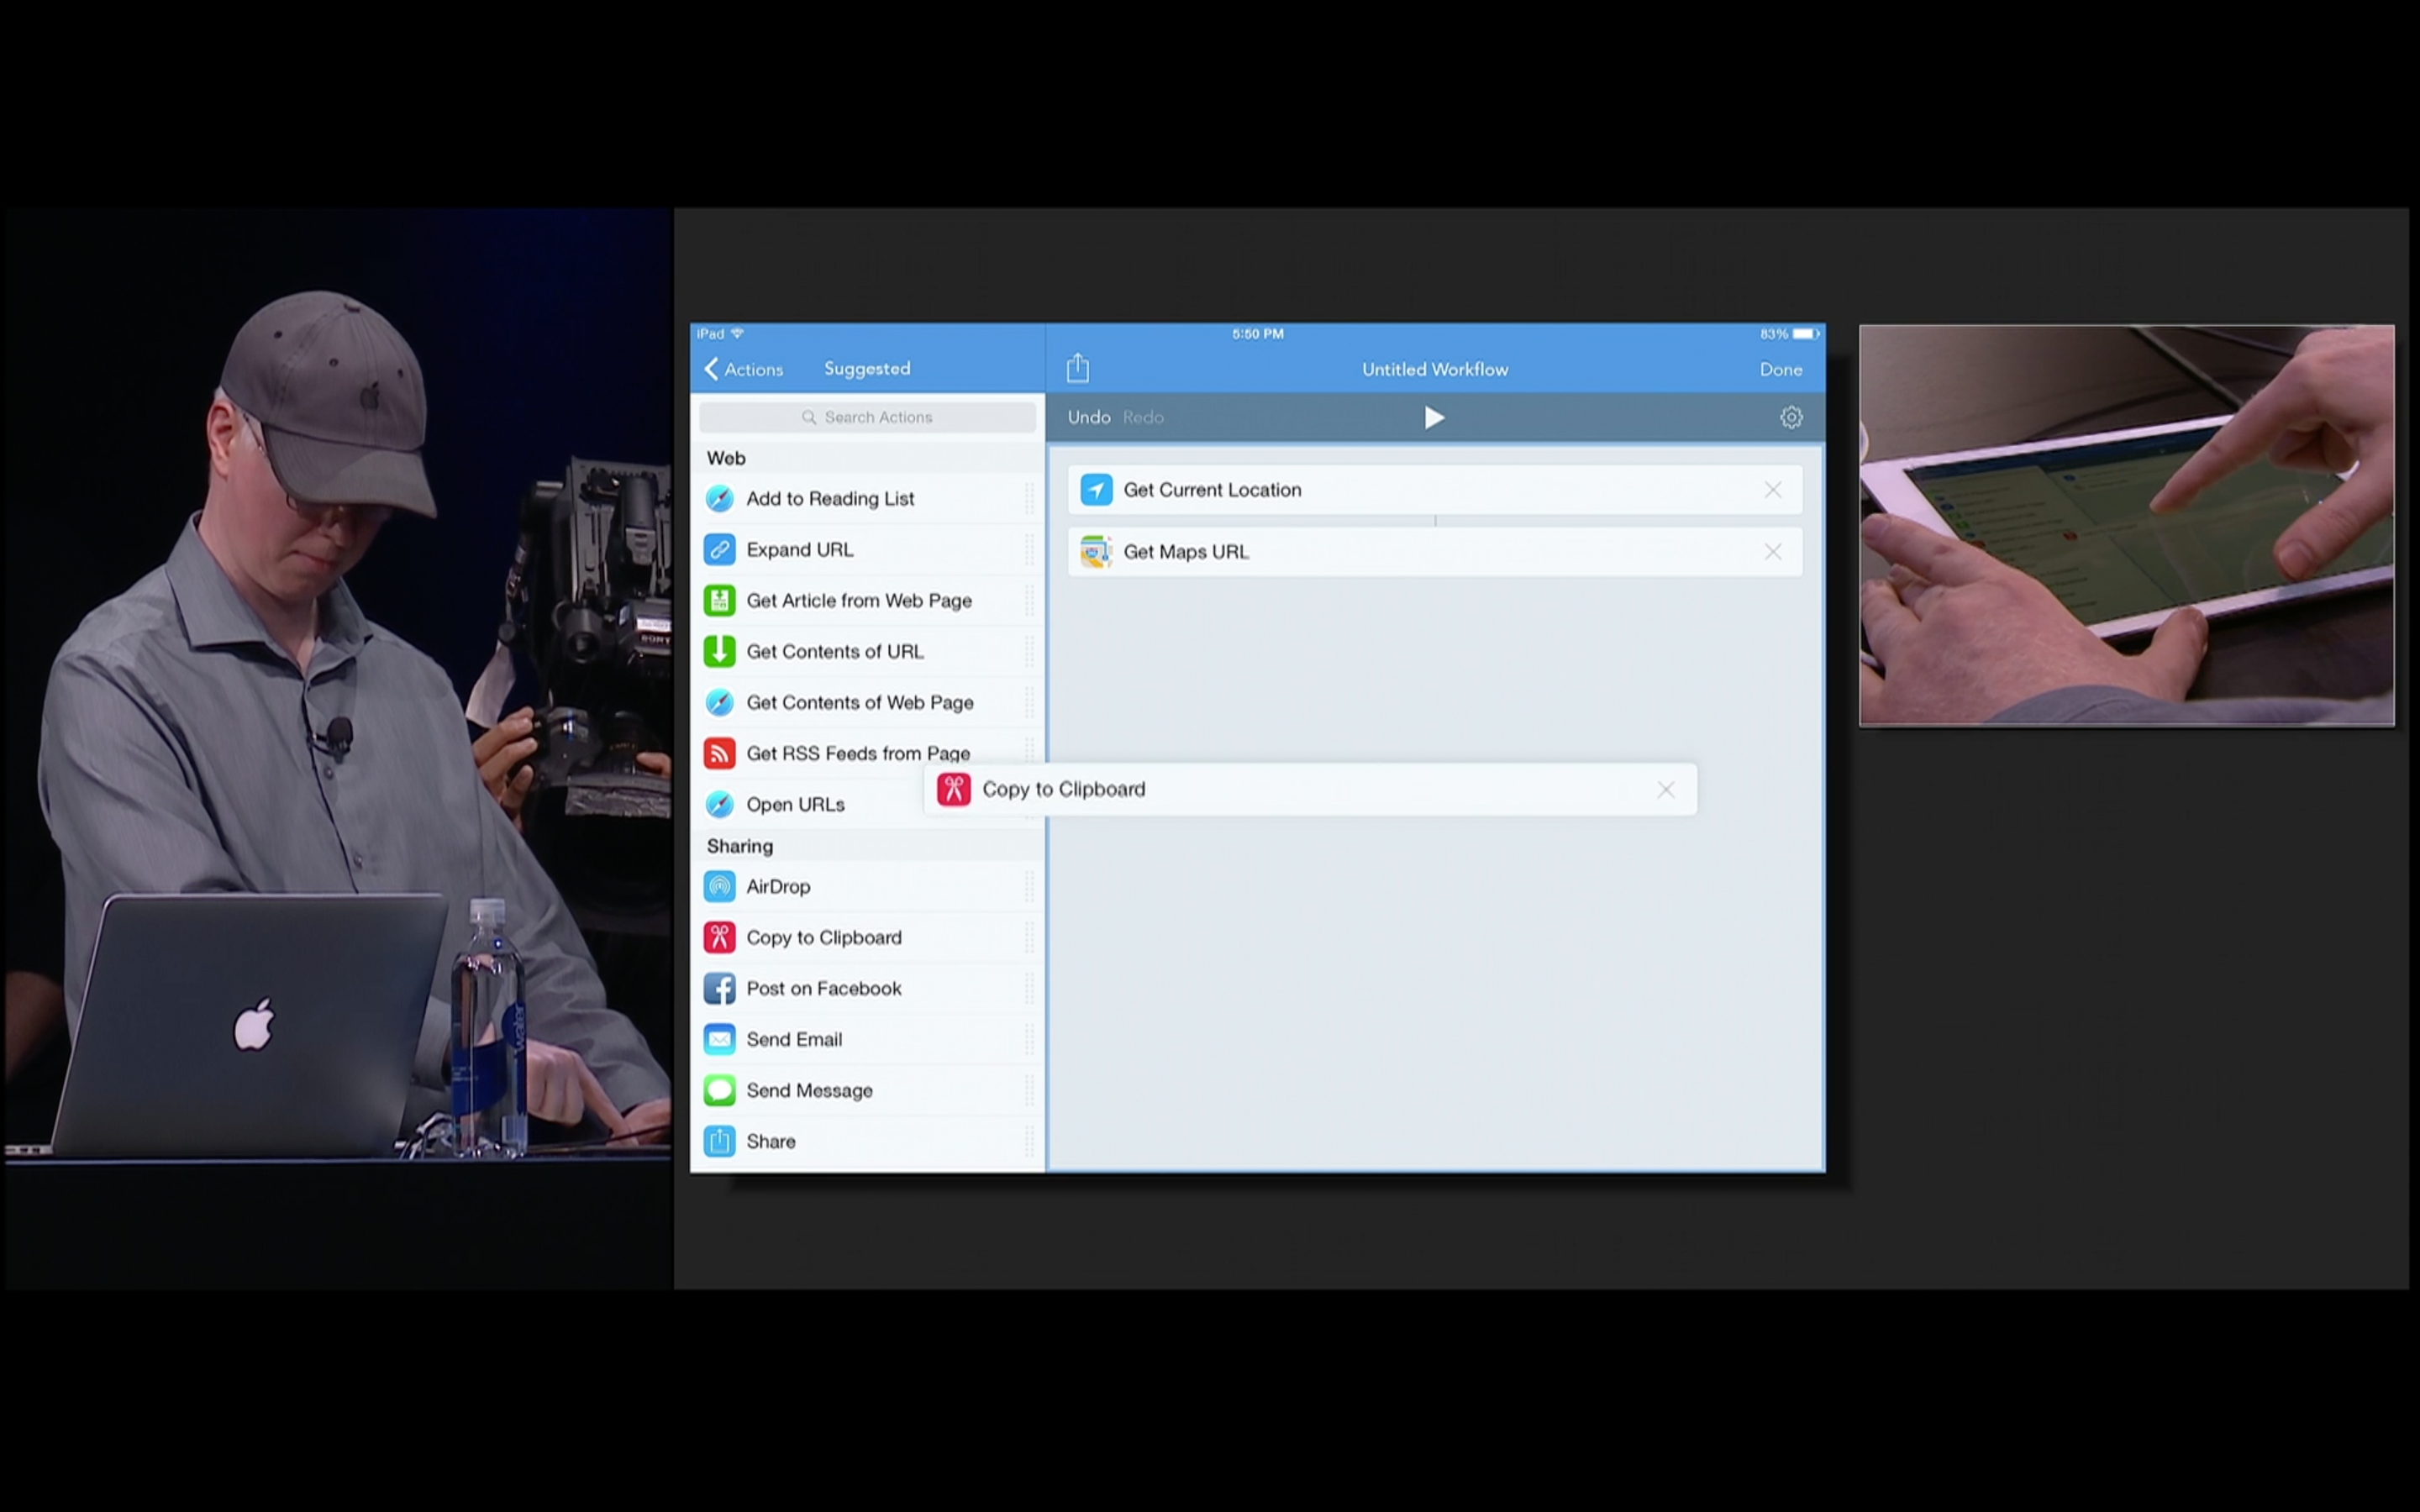 VoiceOver demo of the Workflow app at the Apple Design Awards 2015